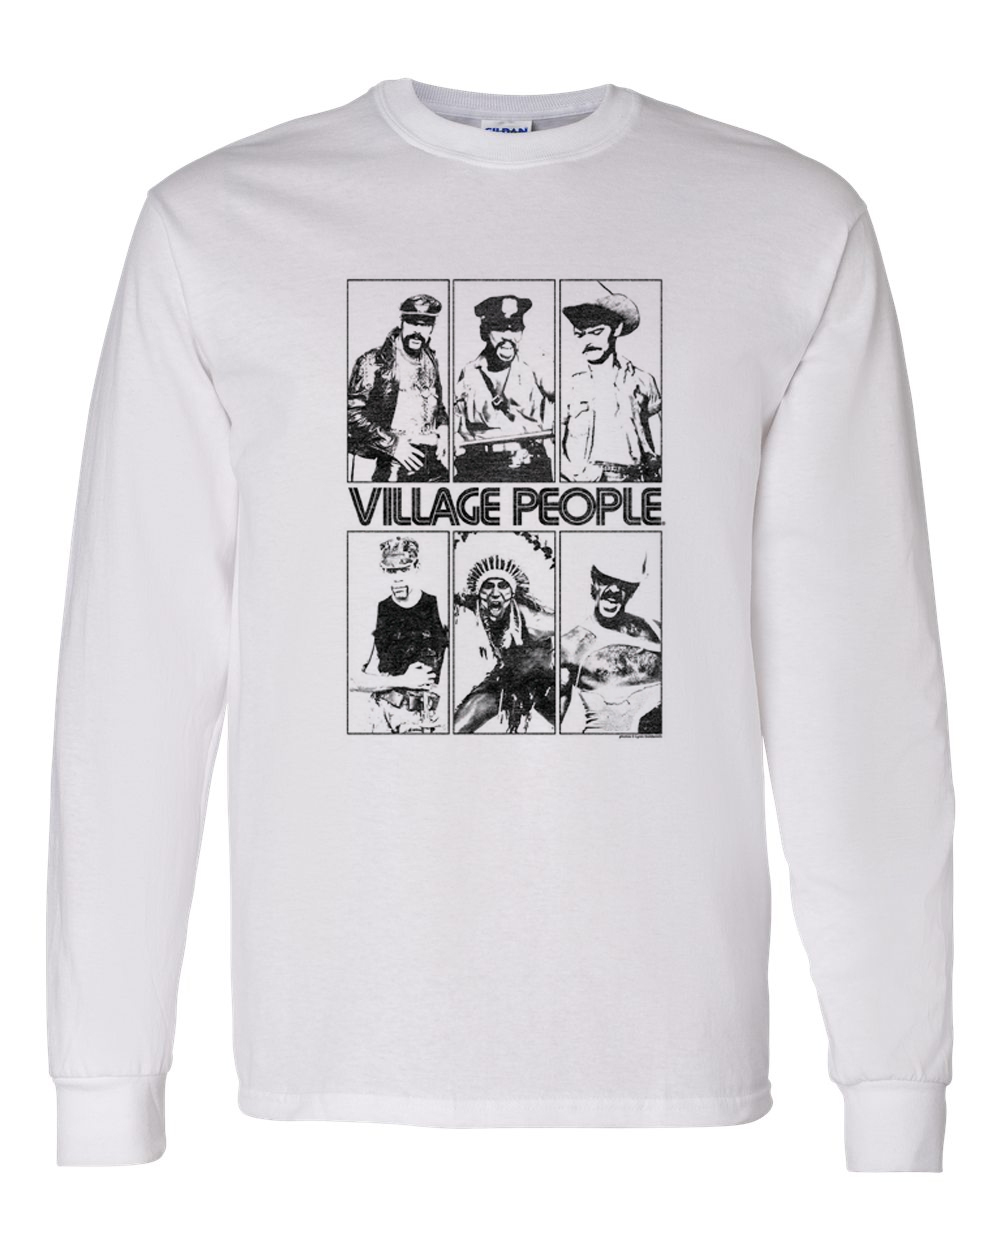 Village people t shirt retro vintage 1970 s disco ymca macho man graphic tee for sale online